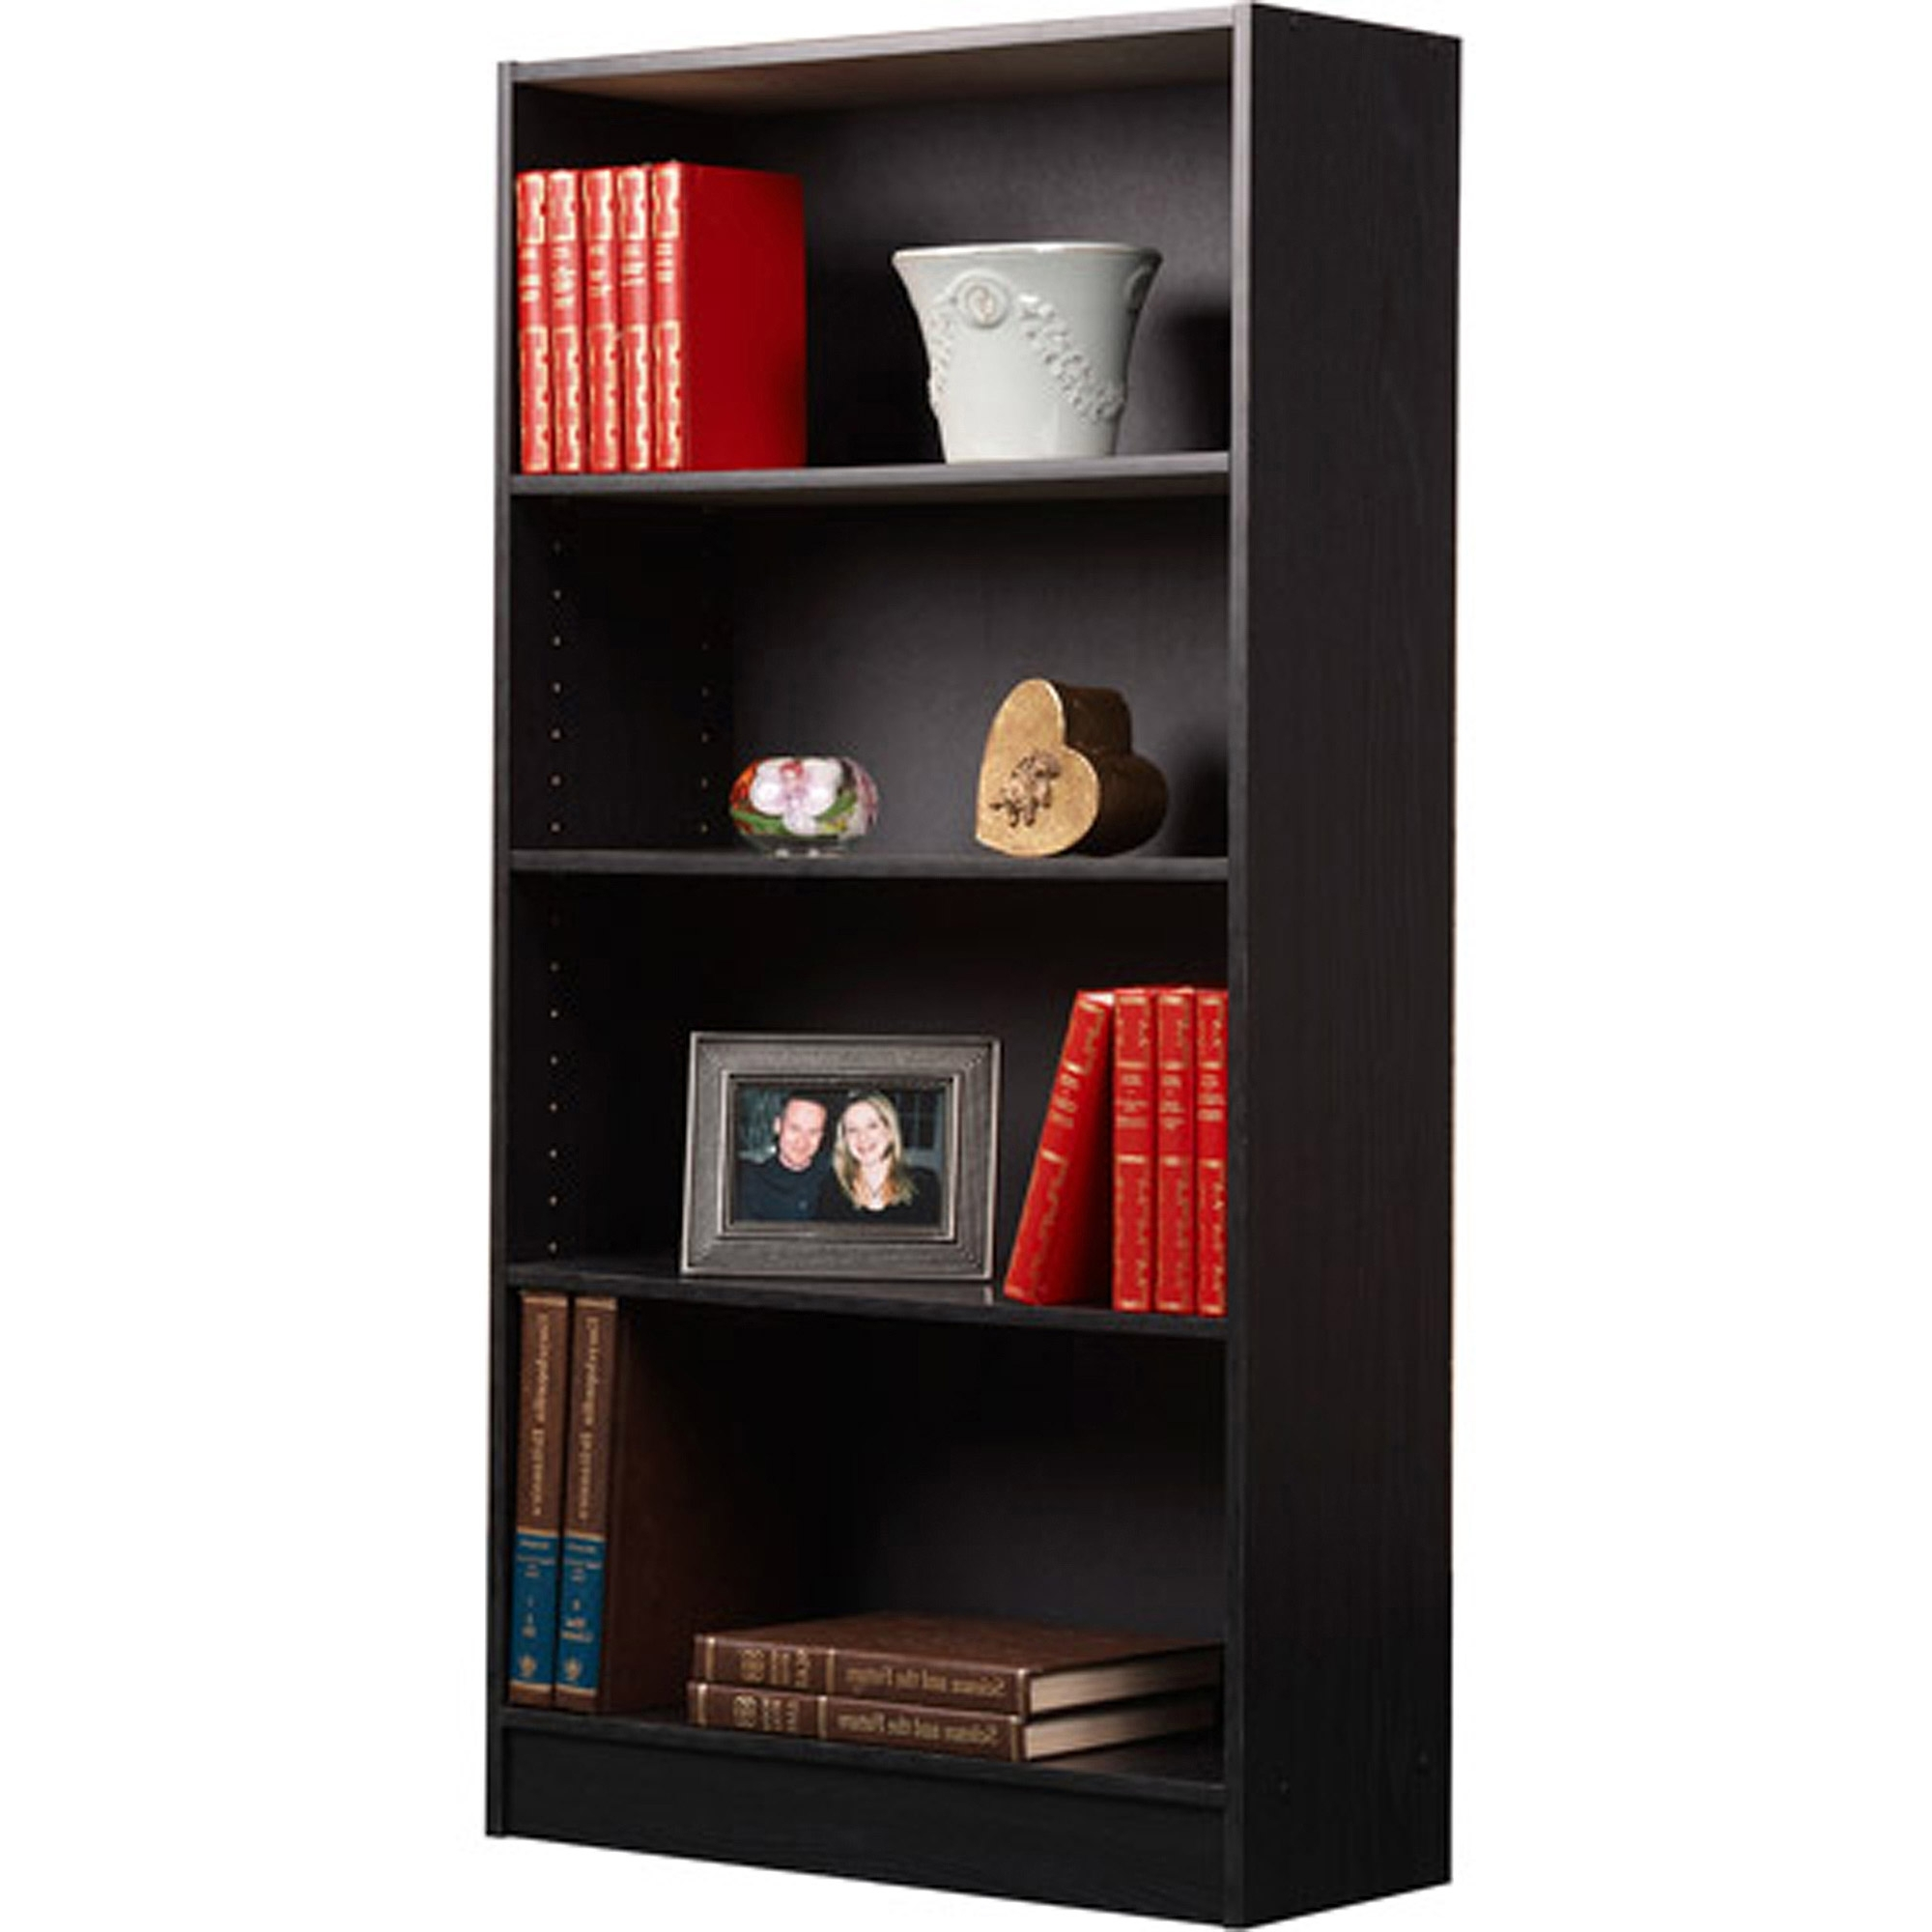 Most Recently Released Walmart Bookcases Regarding Orion 4 Shelf Bookcases, Set Of 2 – Walmart (View 7 of 15)